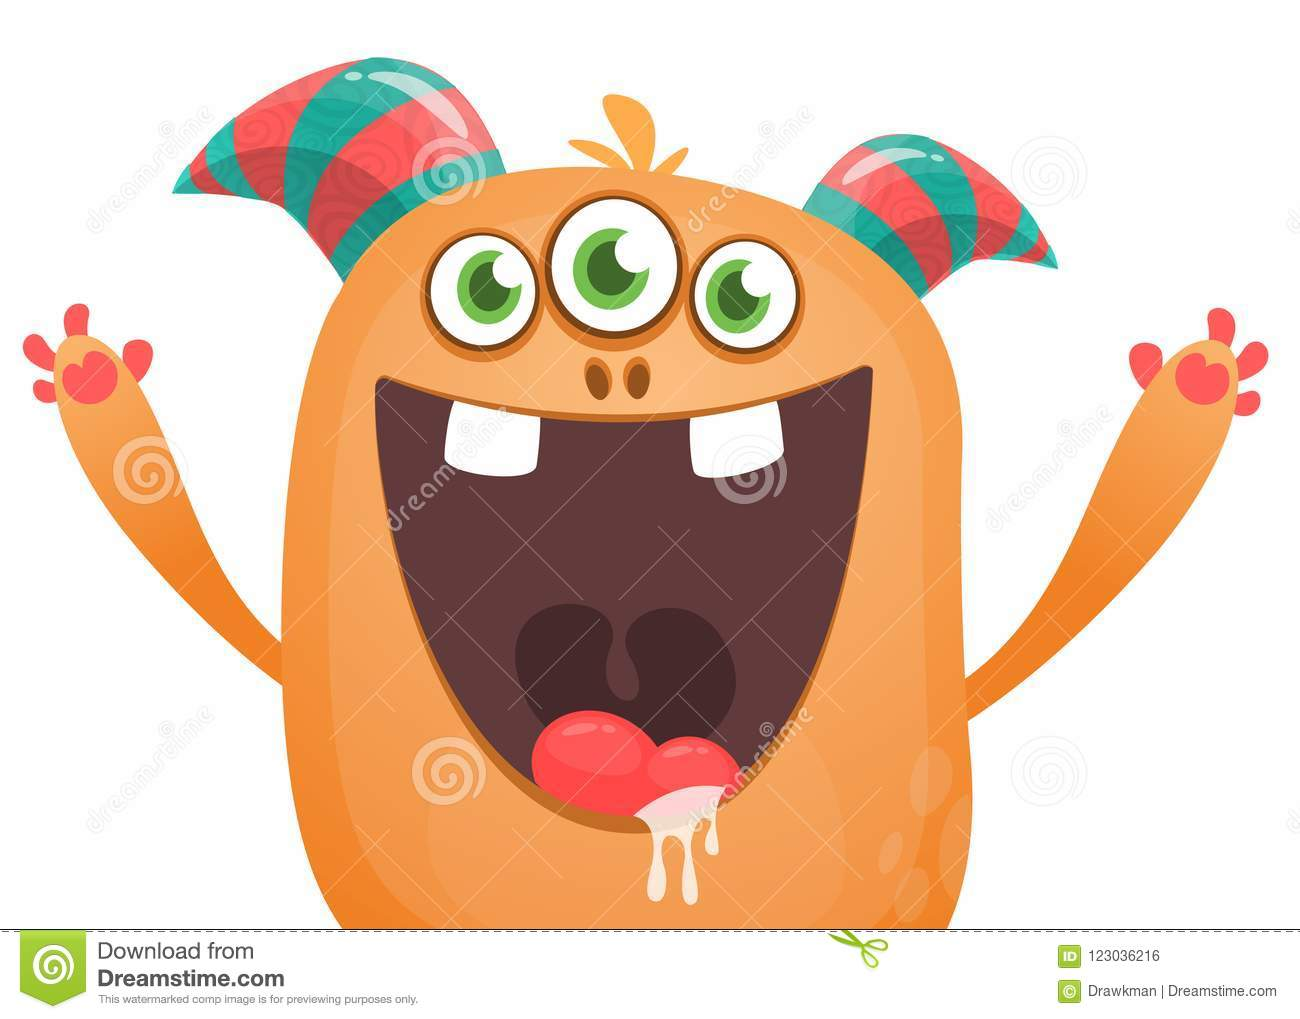 Angry Cartoon Monster With Horns An Three Eyes Big Collection Of Cute Monsters Halloween Character Stock Vector Illustration Of Beast Fluffy 123036216